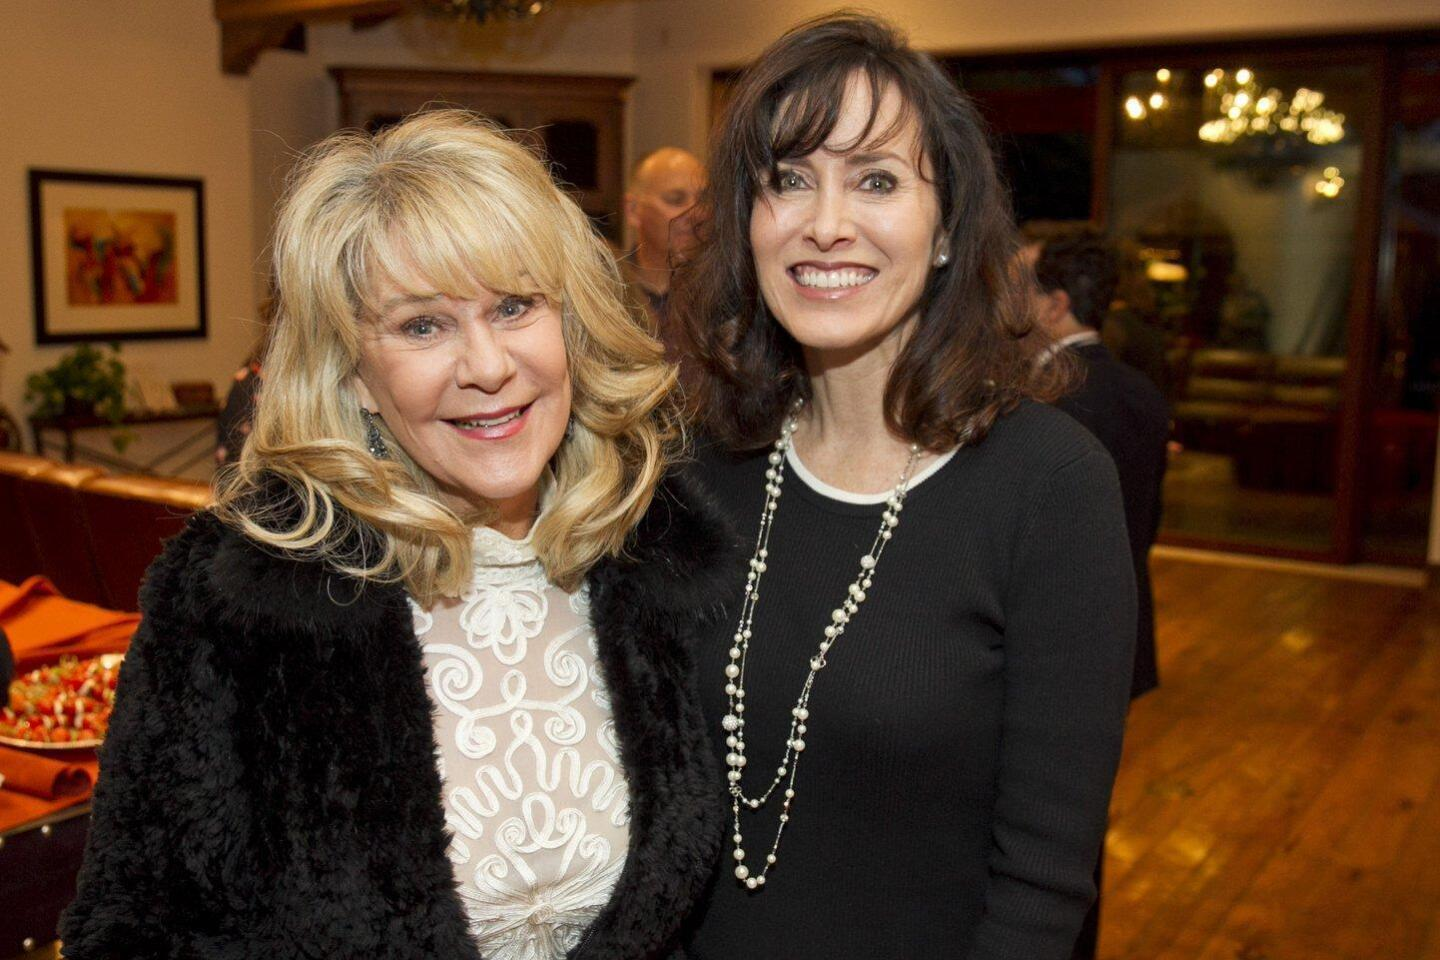 RSF Rotary Winter Serenades Charity Concert